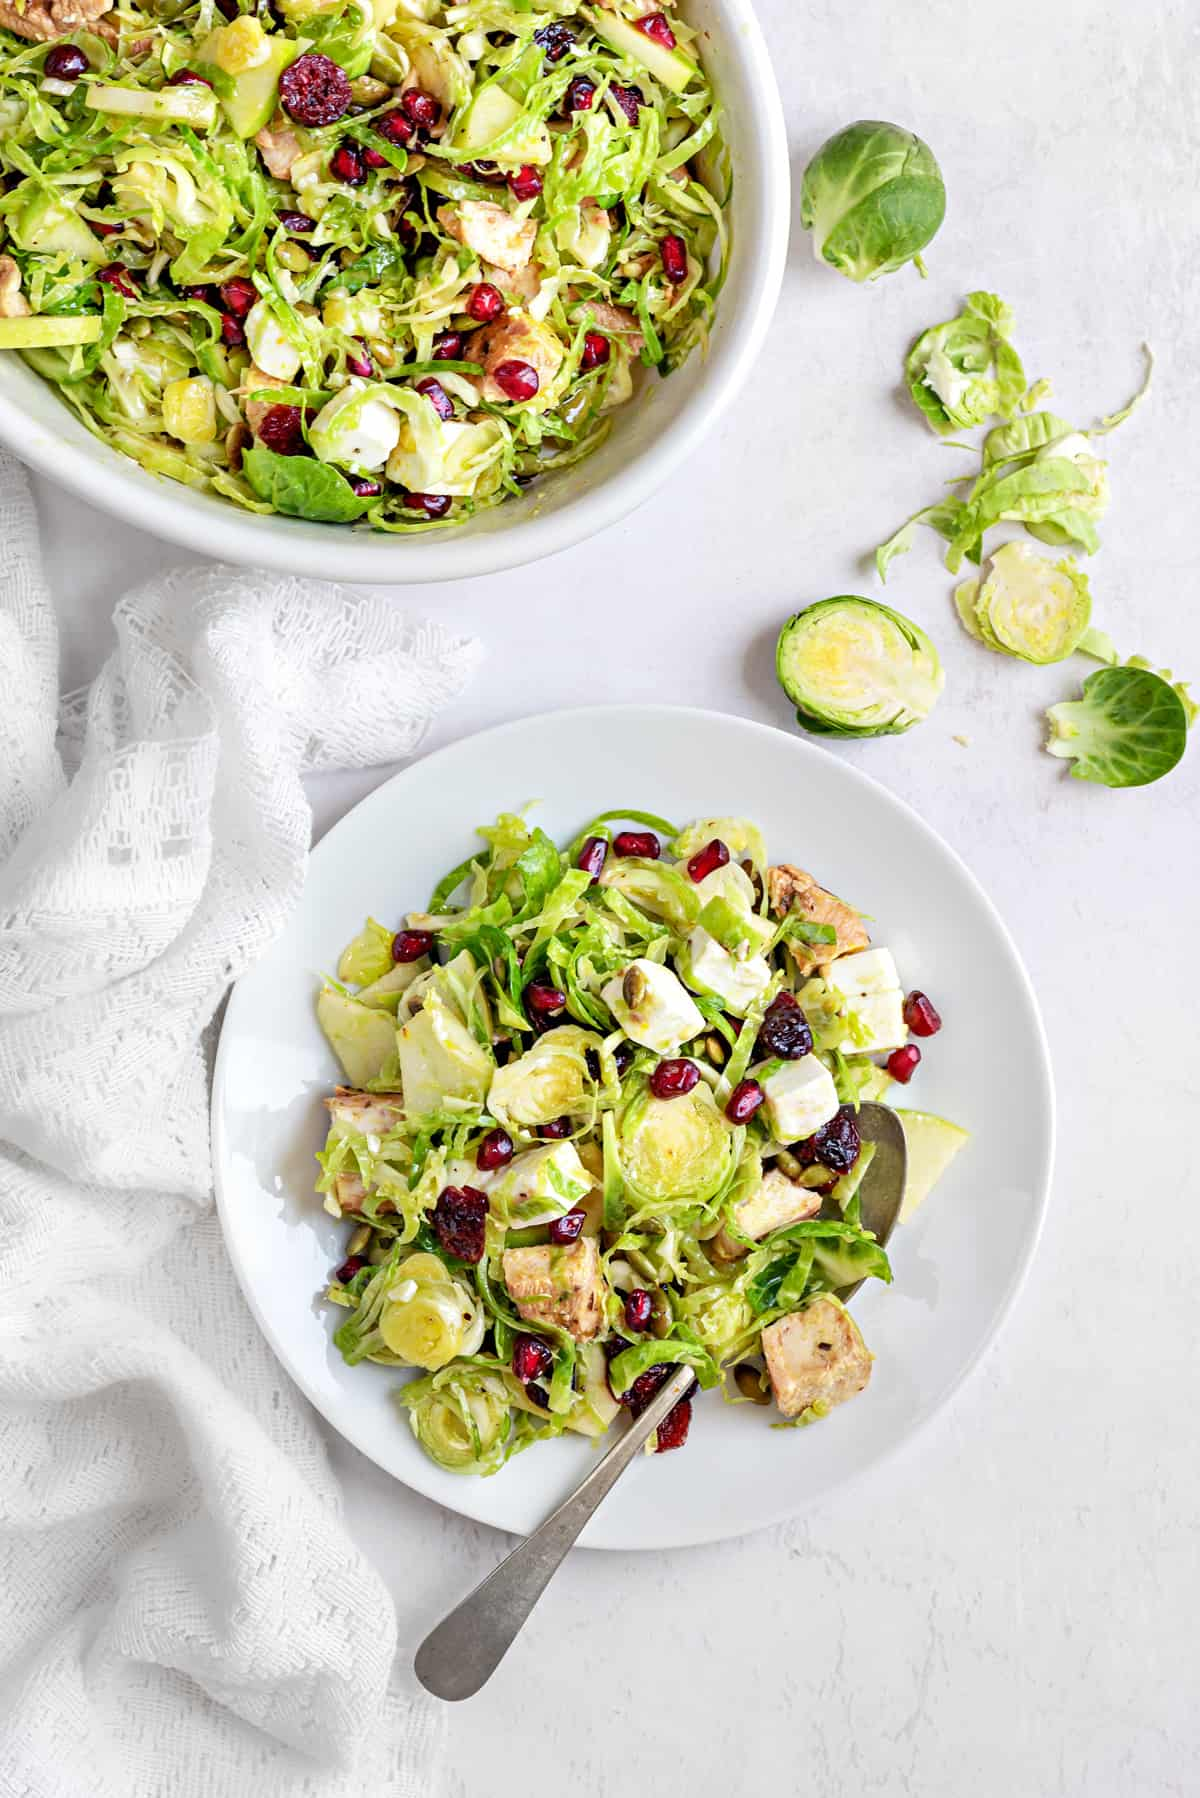 Chicken & Shaved Brussel Sprout Salad